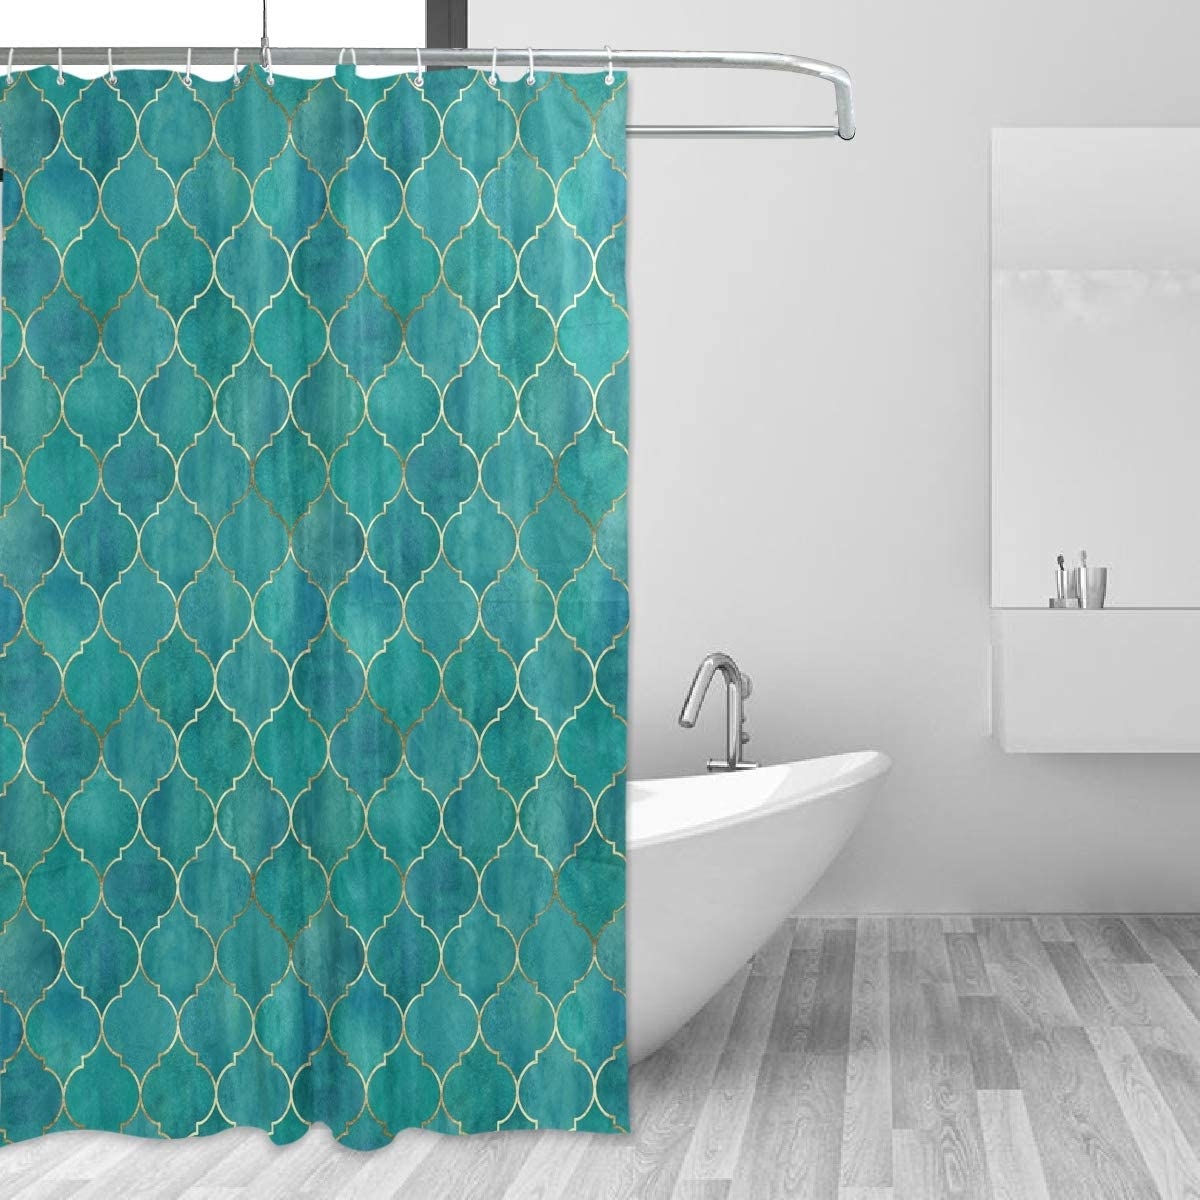 MNSRUU Year-end annual account Fabric Shower Curtain Vintage G Dedication Decorative Moroccan with